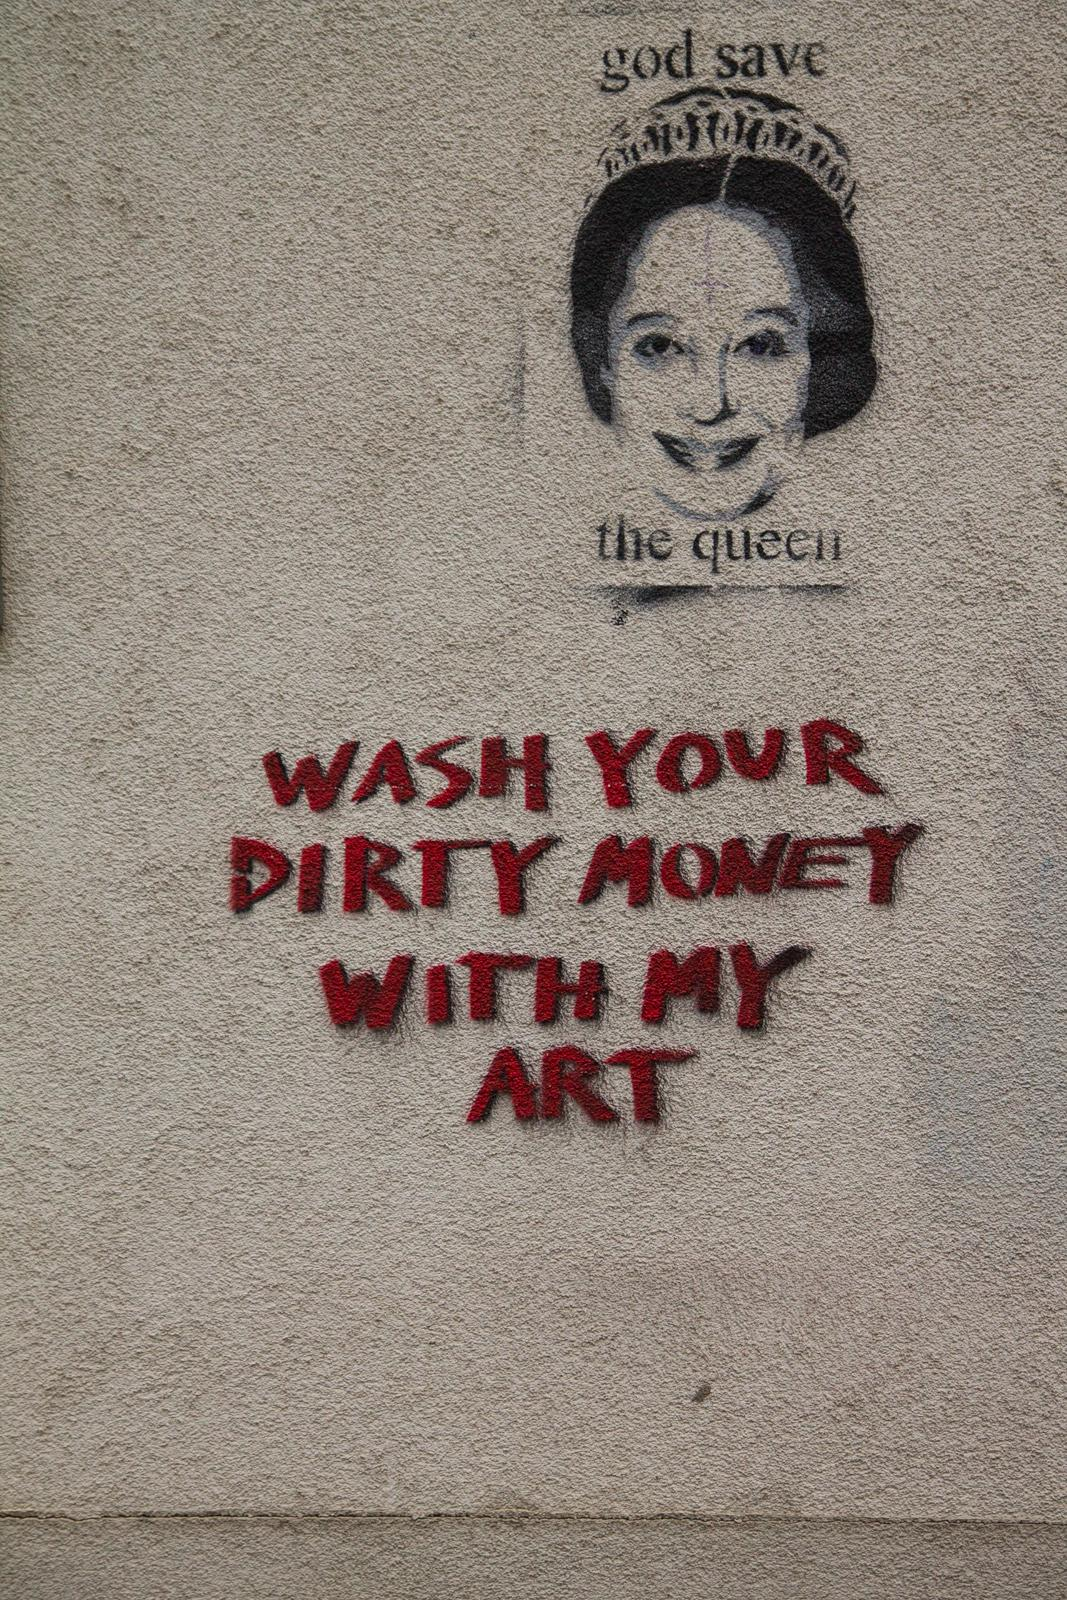 Wash your dirty money with my art